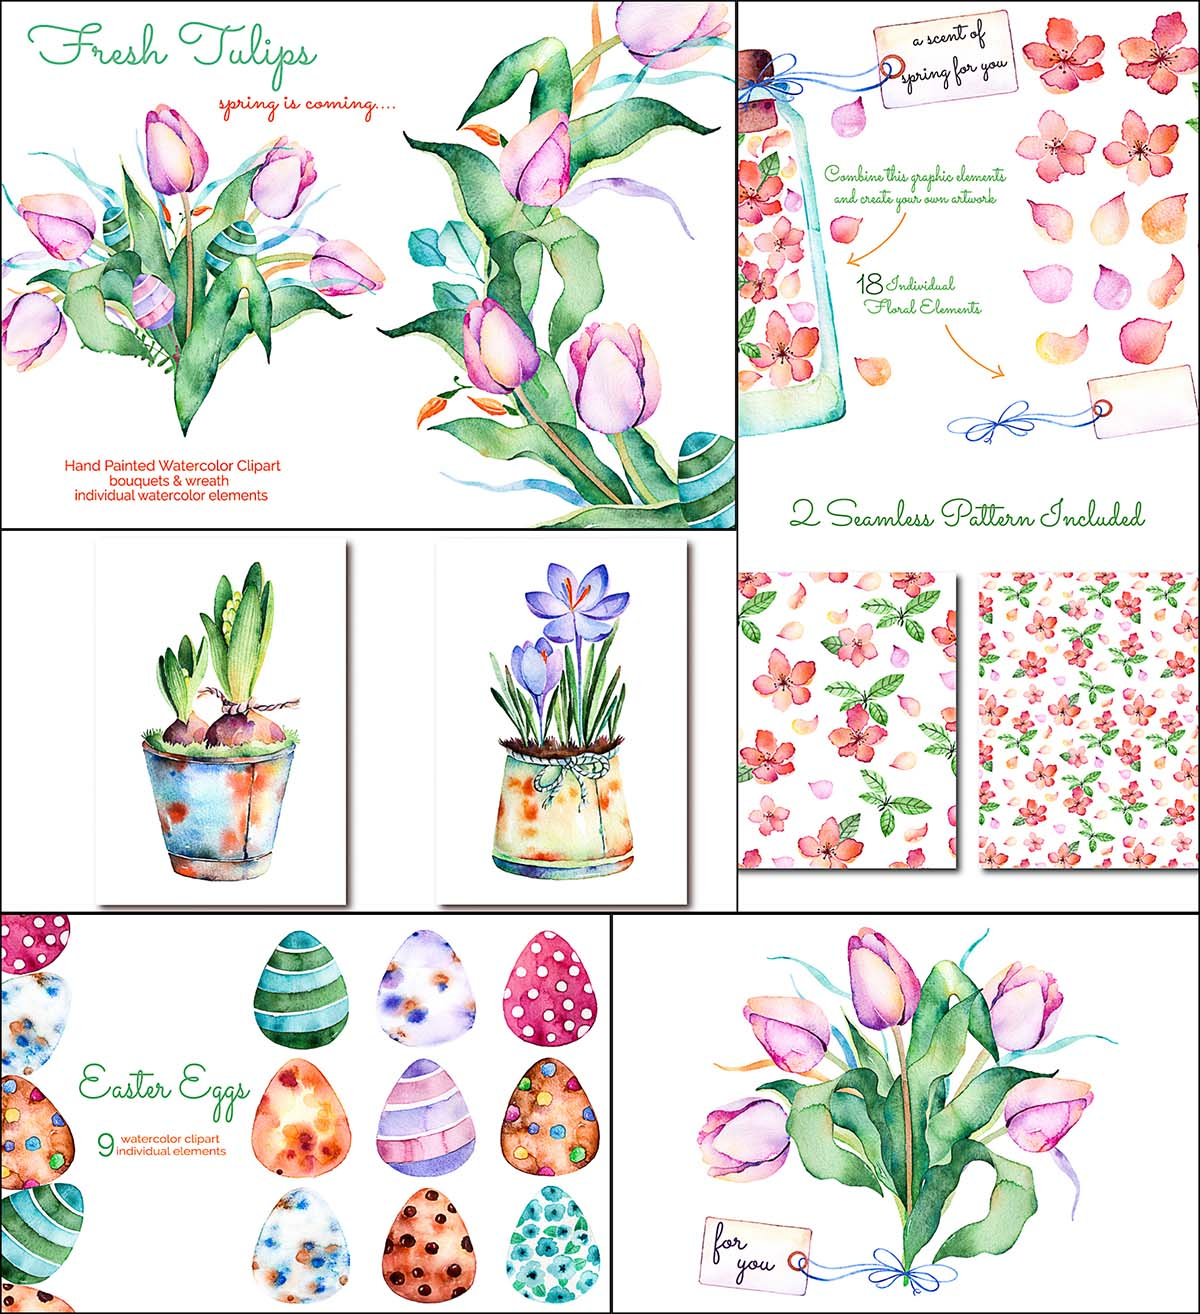 Hand drawn watercolor spring flowers and eggs